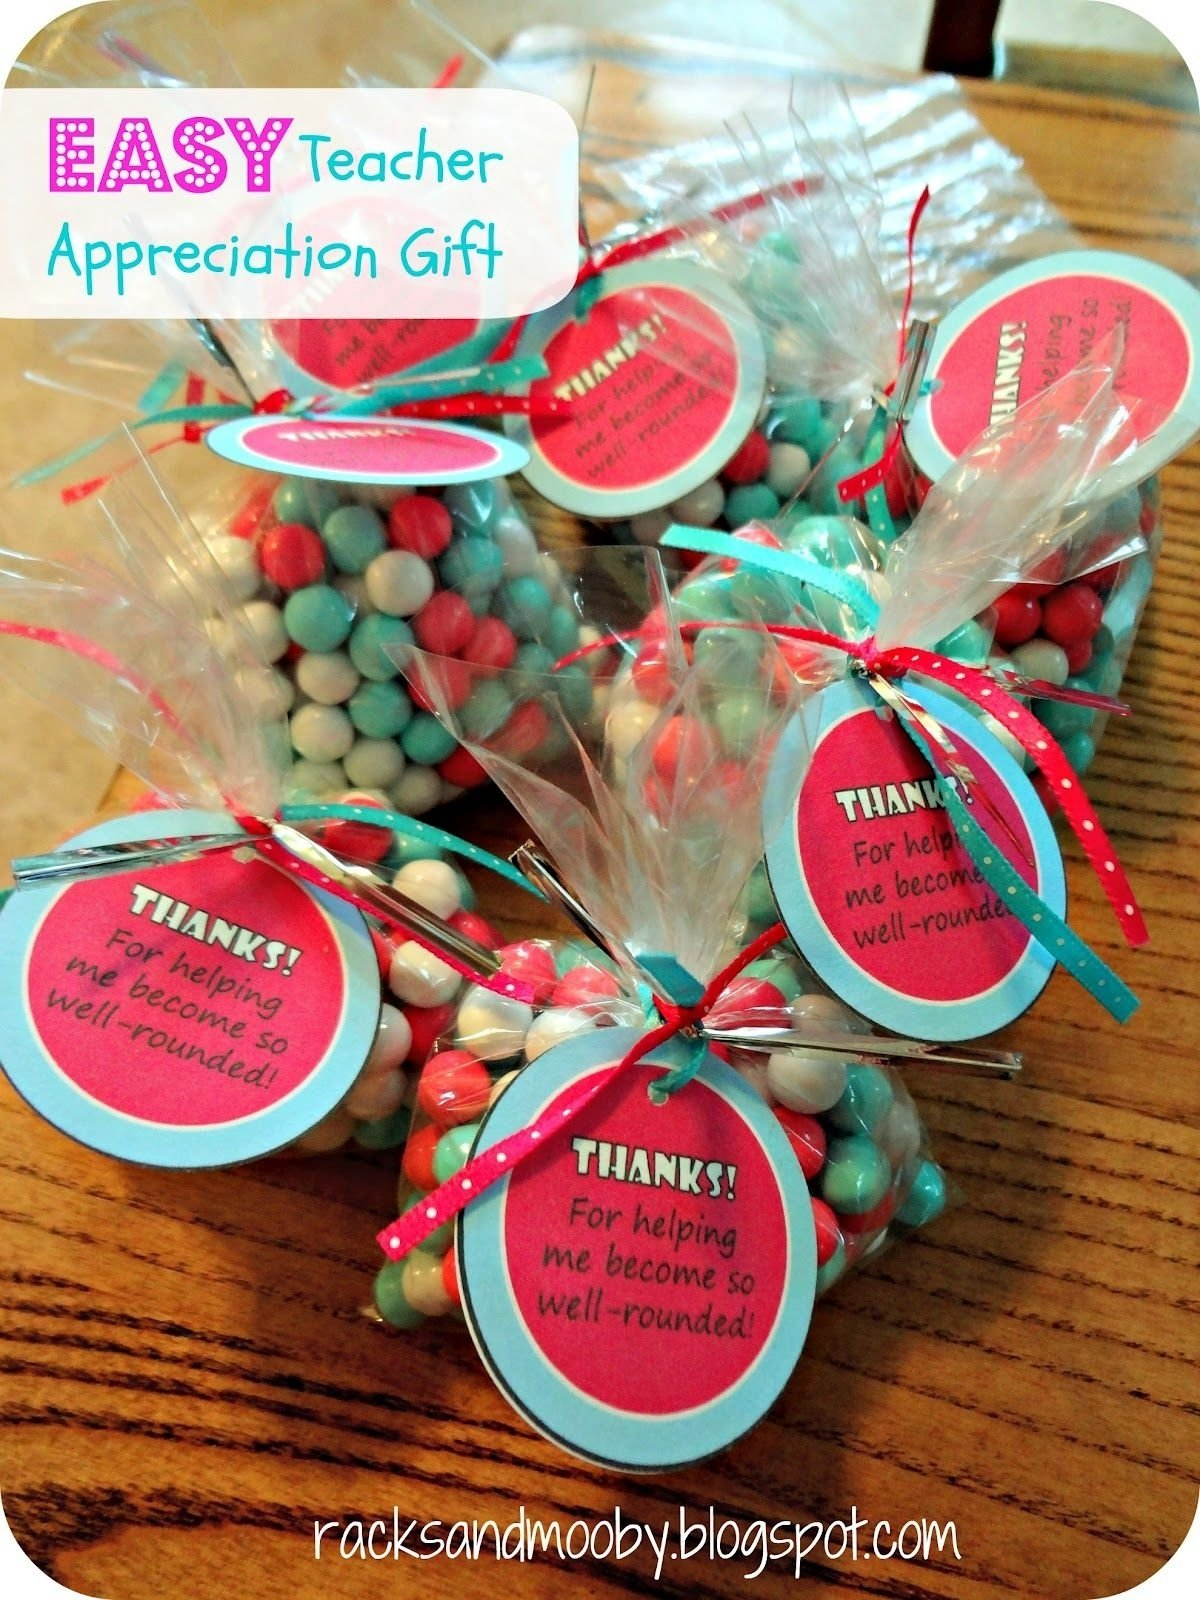 10 Attractive Teacher Appreciation Gift Ideas With Candy